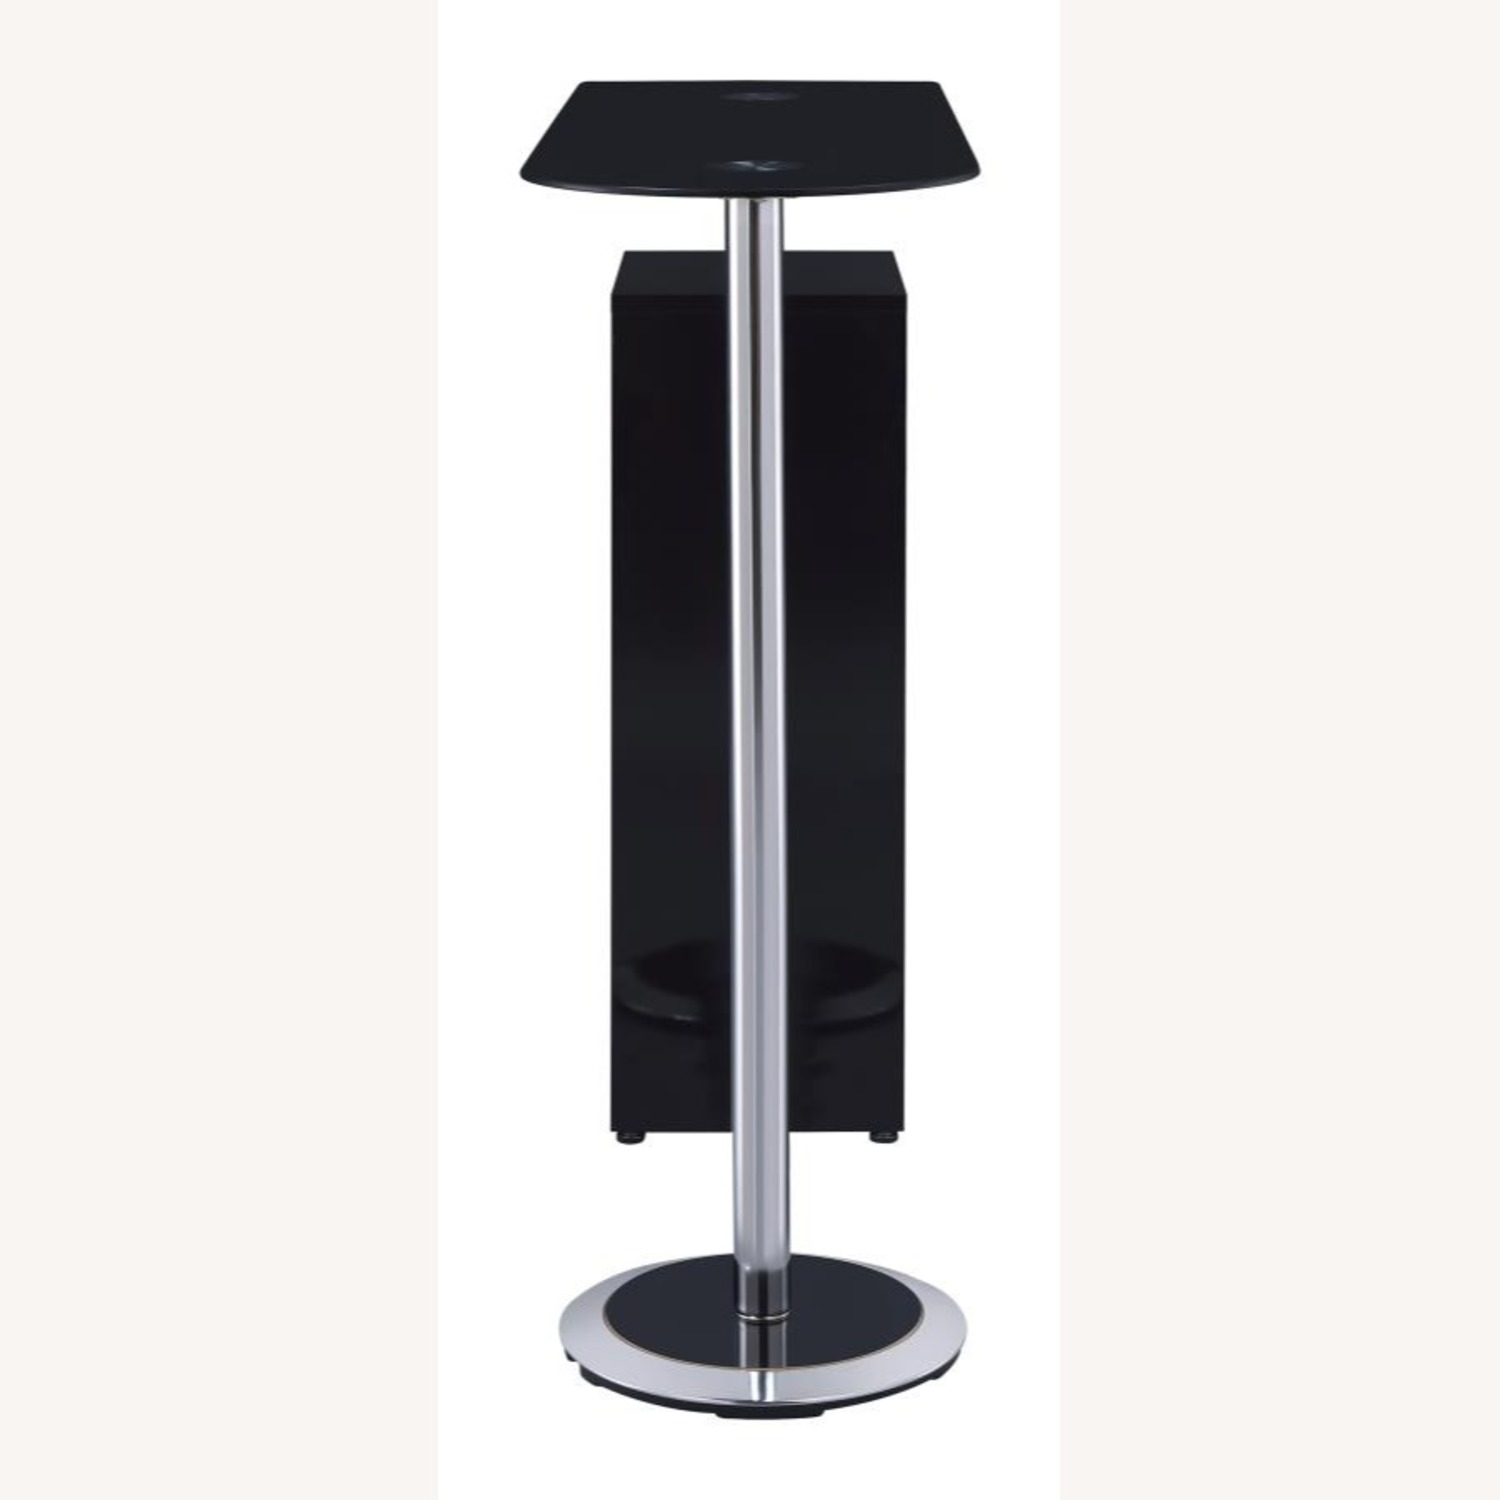 Bar Table In High Gloss Black Lacquer Finish - image-3